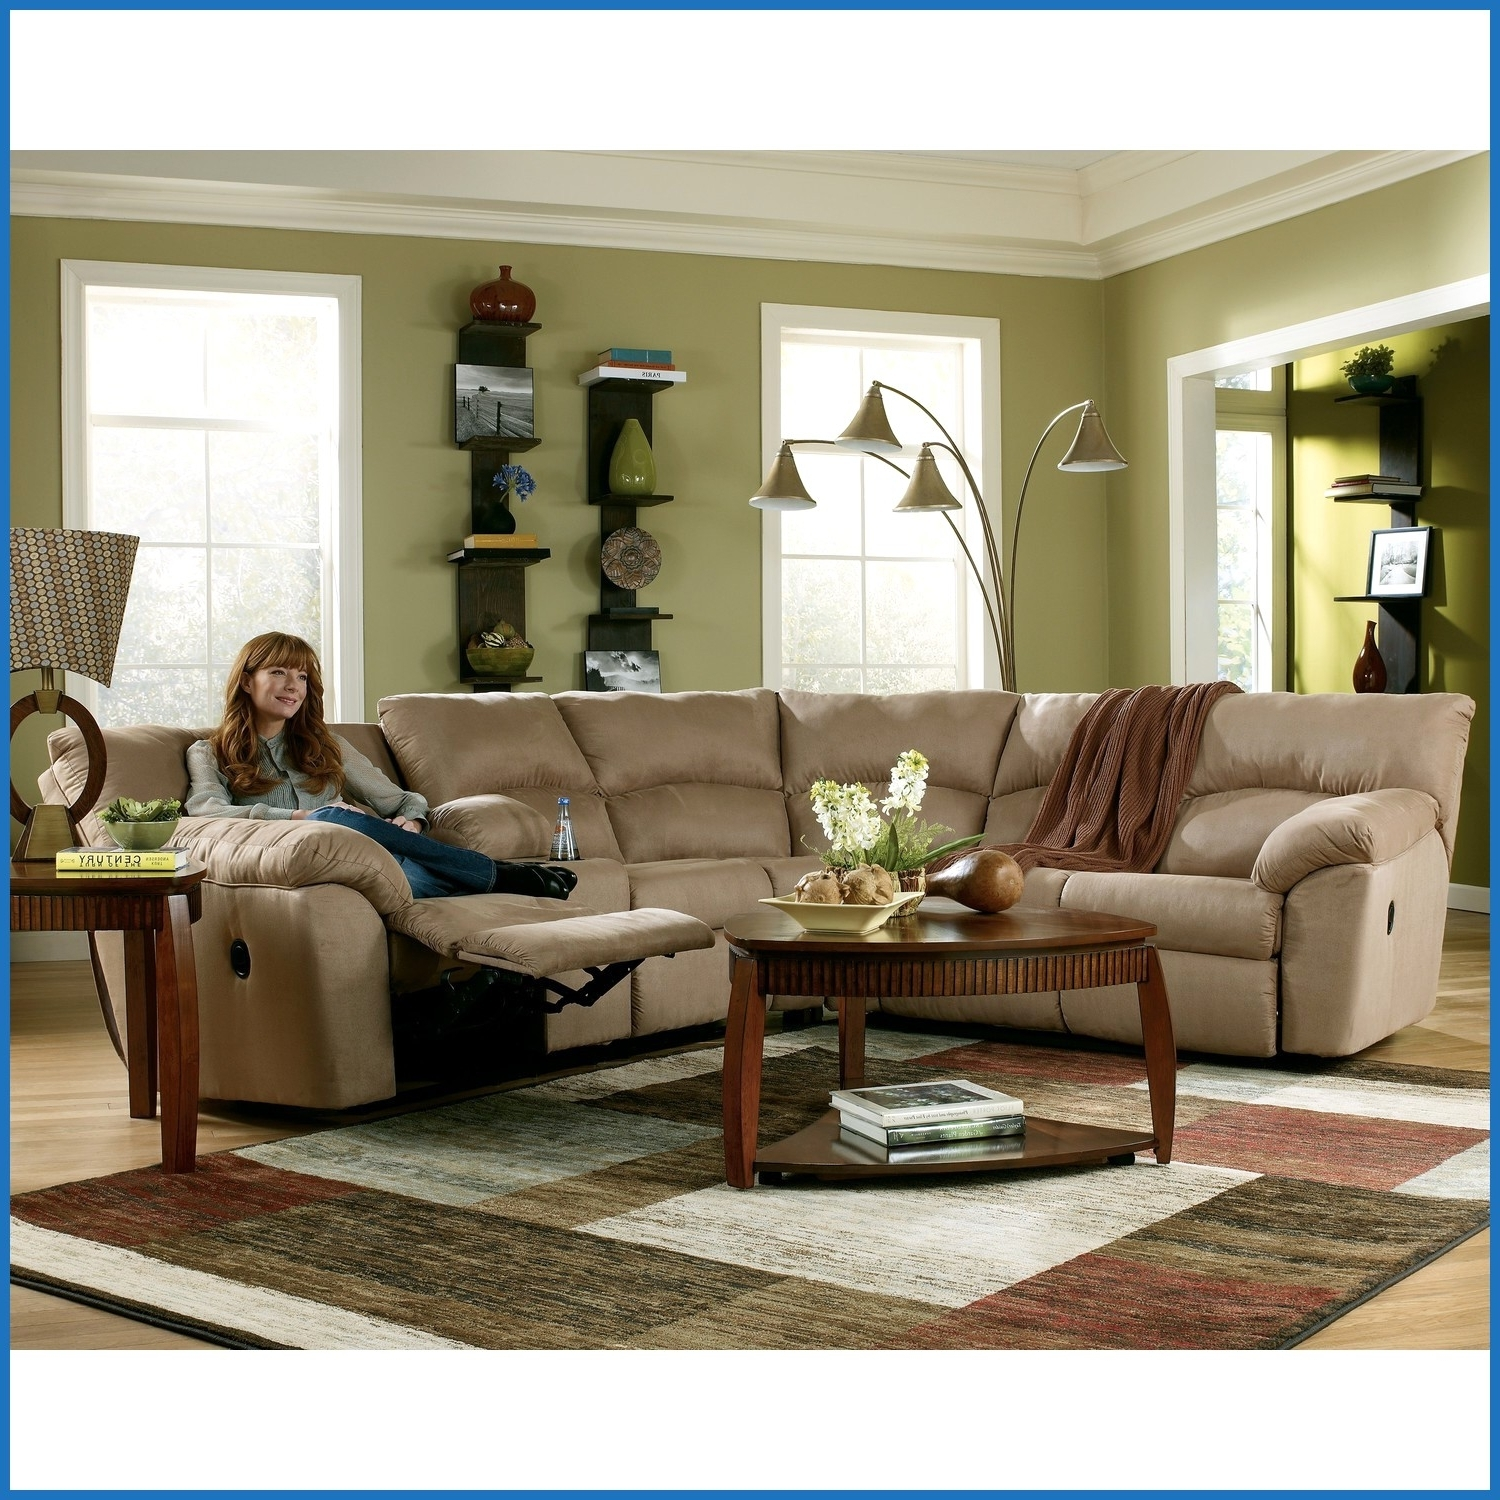 Newest Beautiful Floor Lamps Behind Sectional Sofas Stock Of Floor Decor Inside Sectional Sofas In Stock (View 13 of 20)